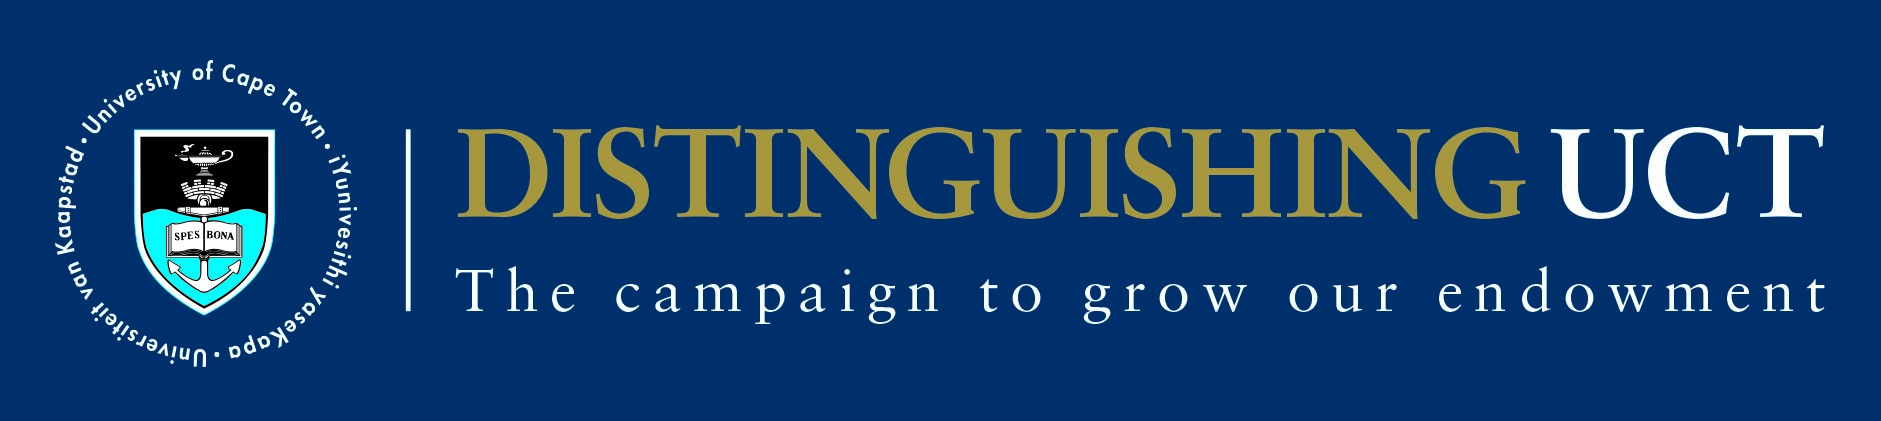 'Distinguishing UCT' Annual Appeal